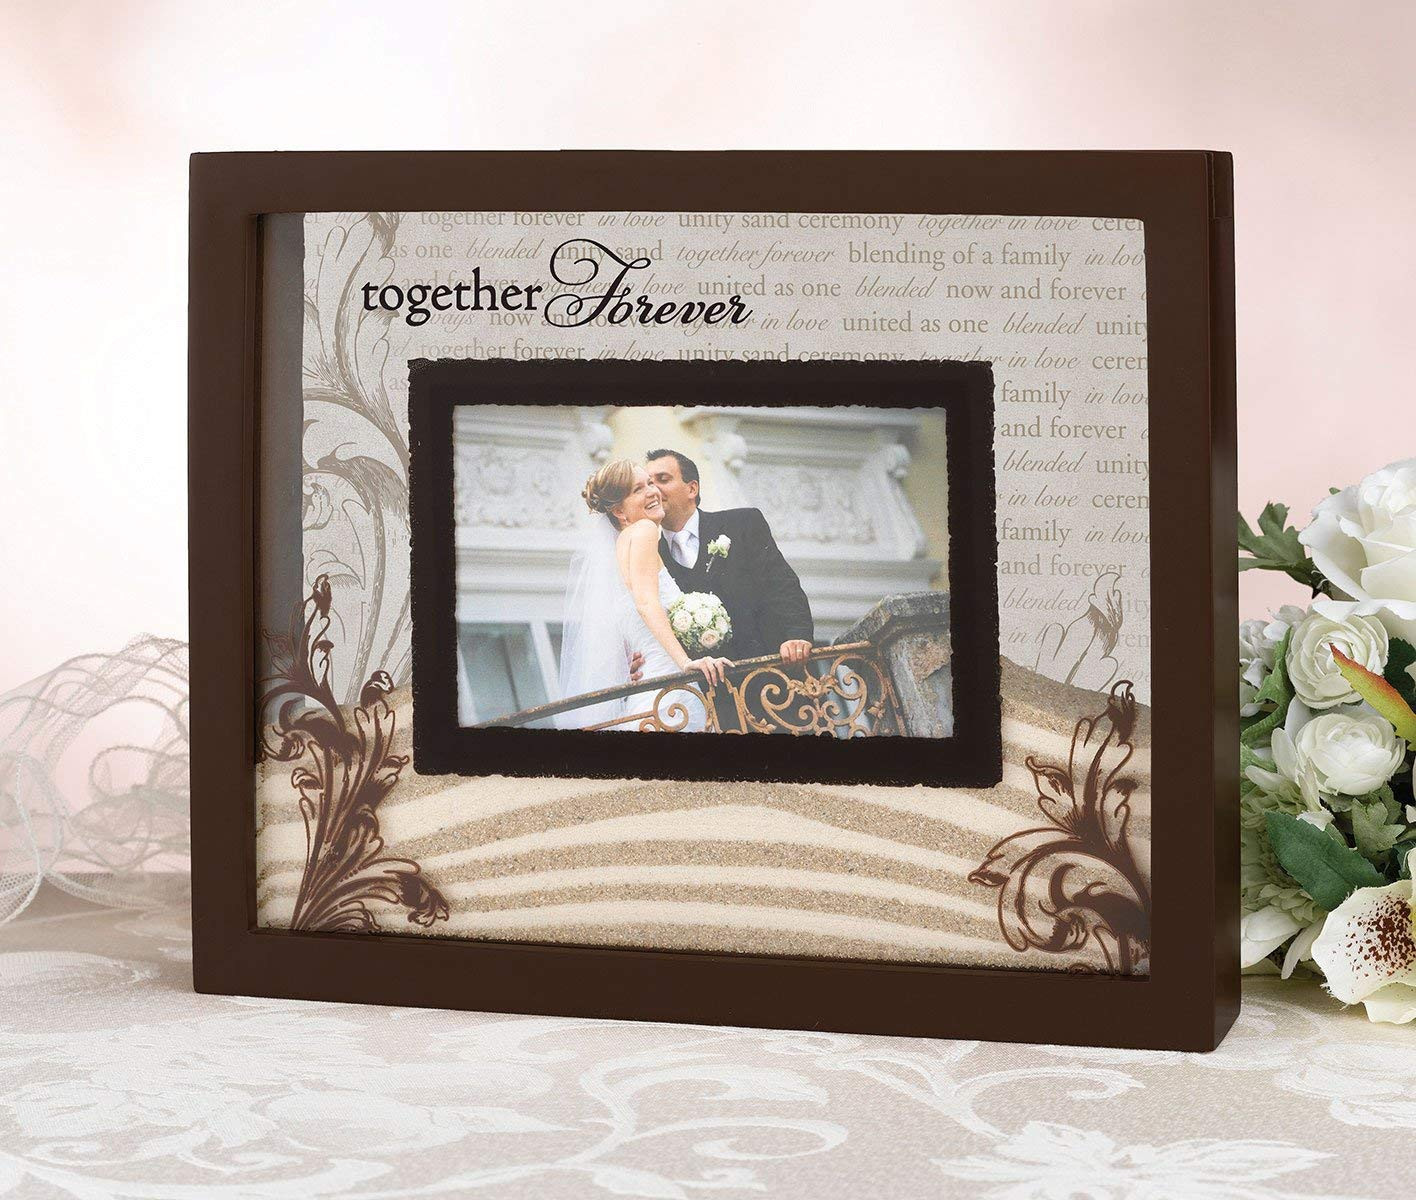 engraved unity sand vase of amazon com lillian rose unity sand ceremony wedding picture frame in amazon com lillian rose unity sand ceremony wedding picture frame single frames